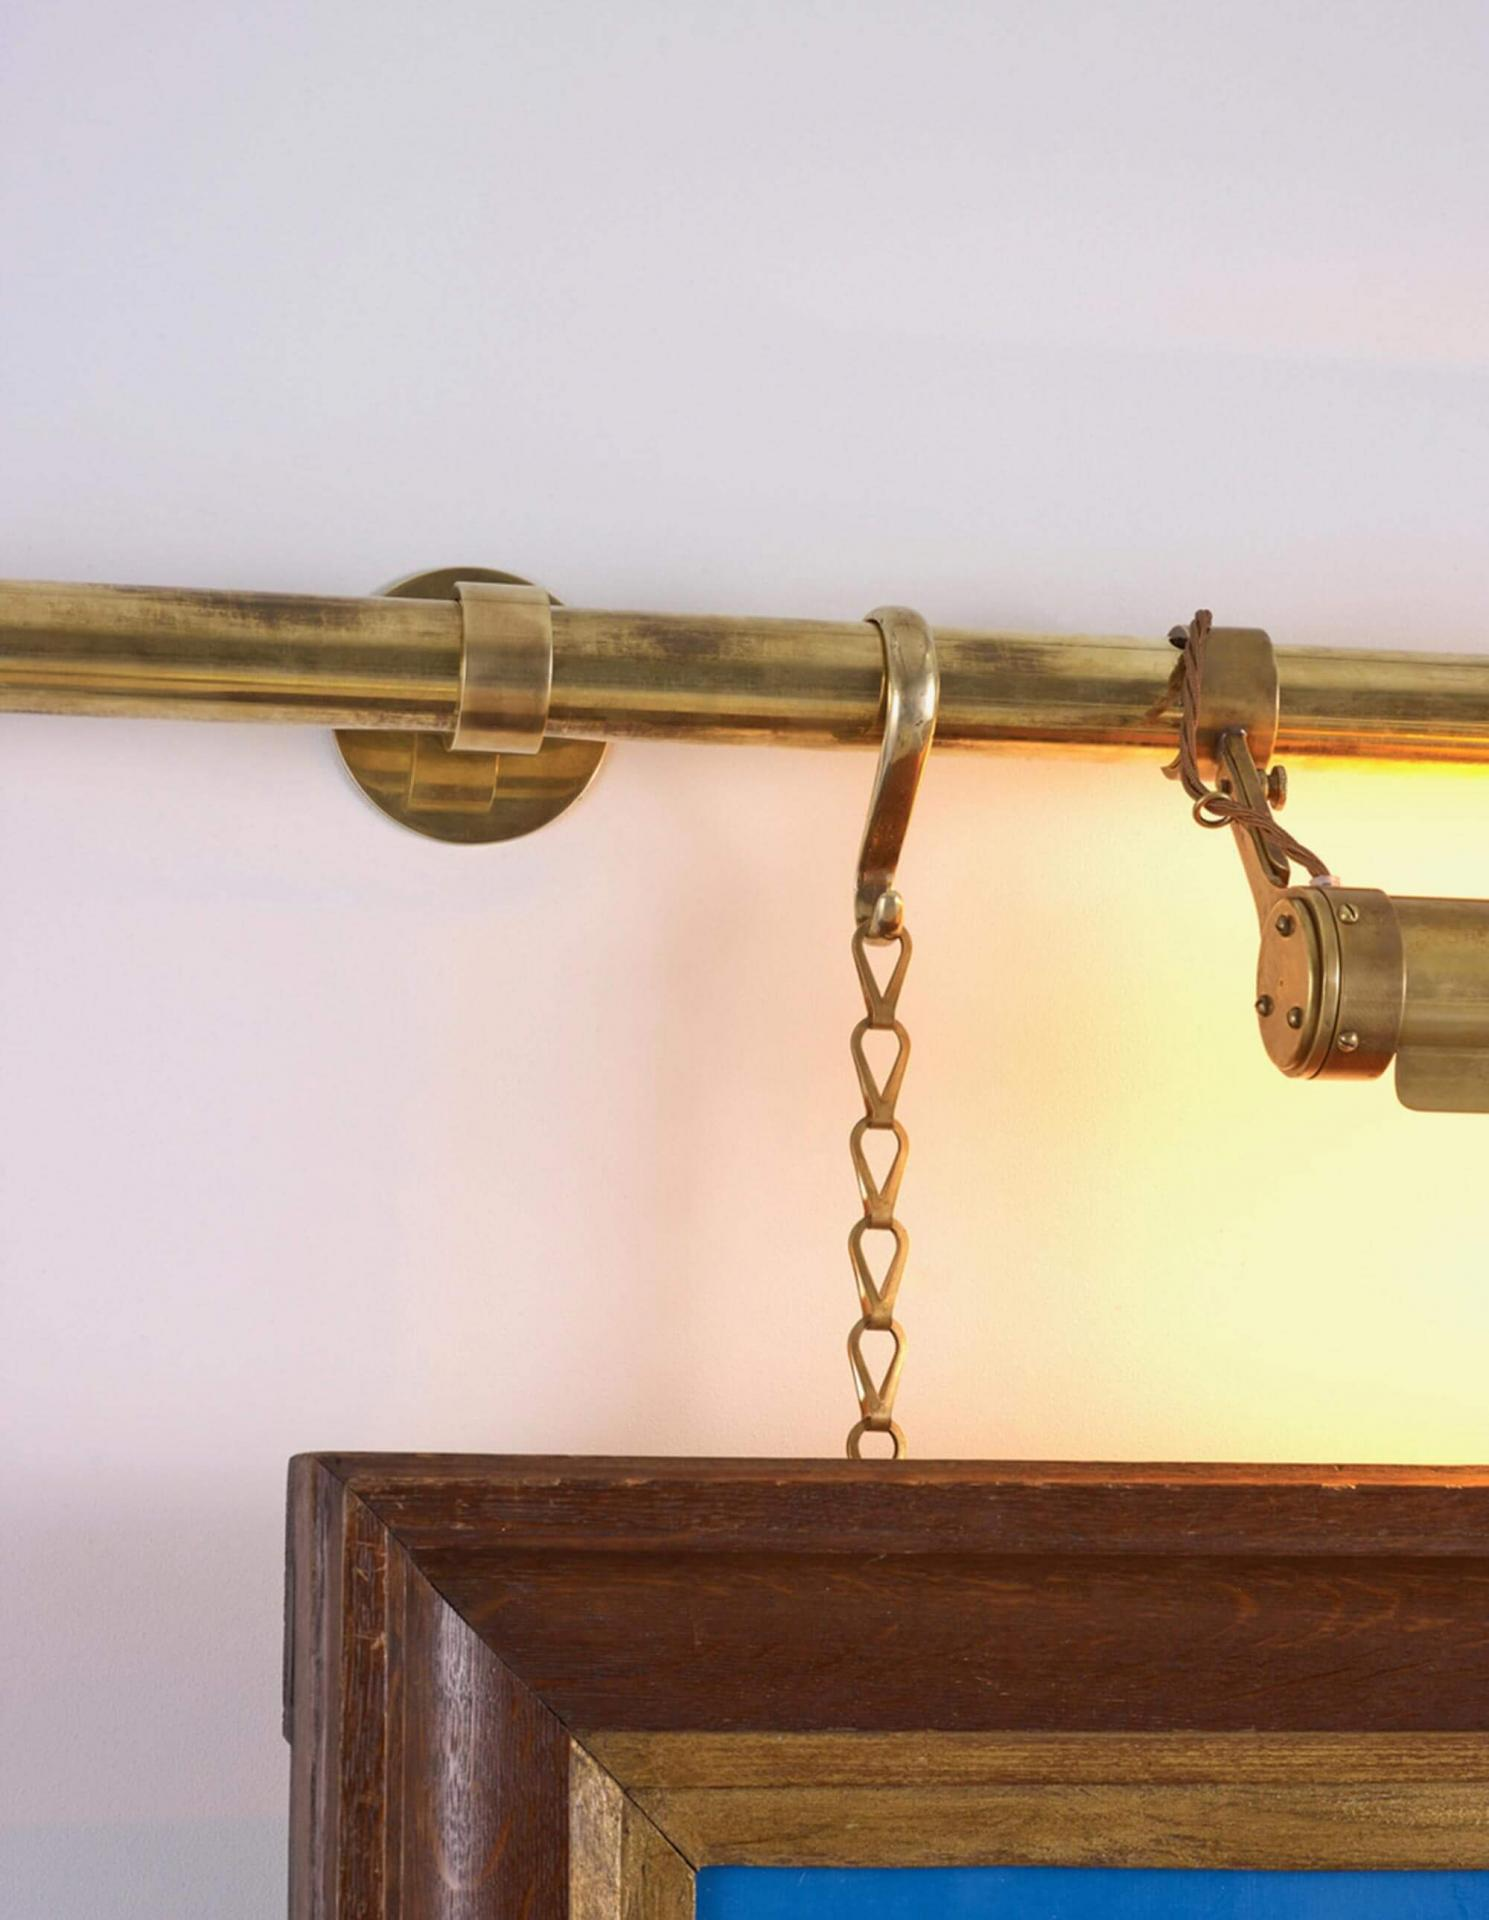 brass picture rail and lighting for art hanging